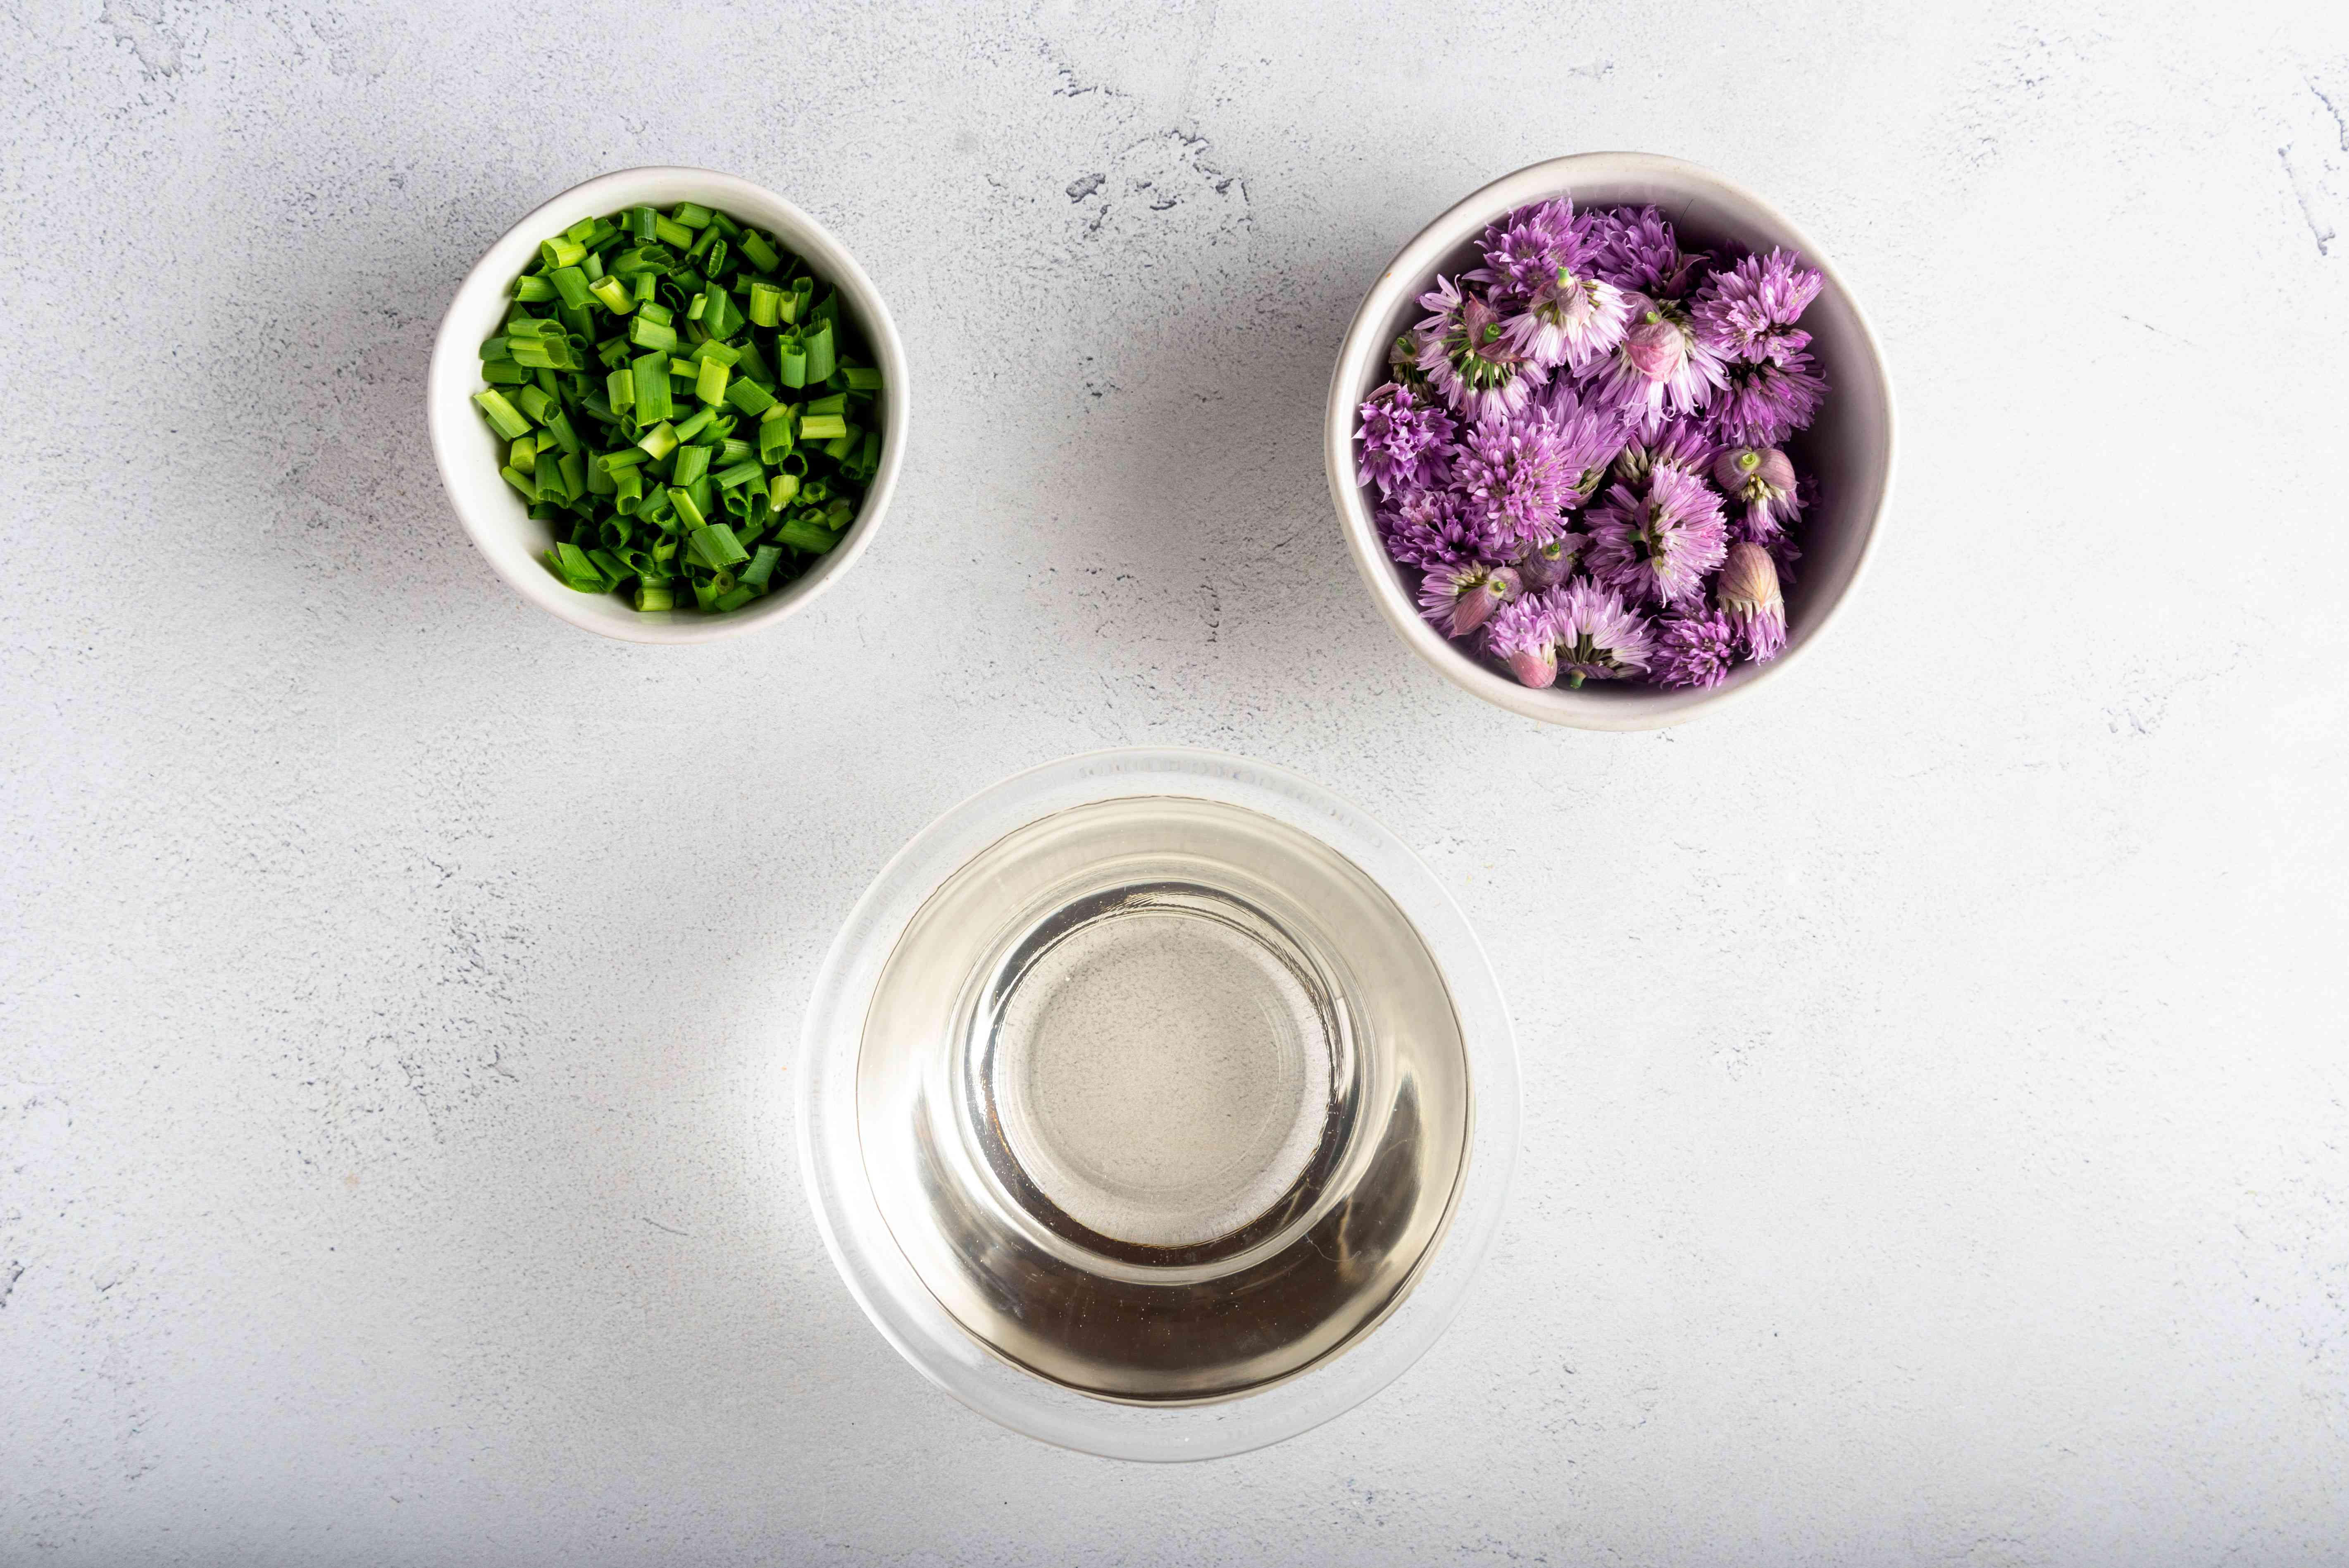 chive blossoms, vinegar and chopped chives in bowls